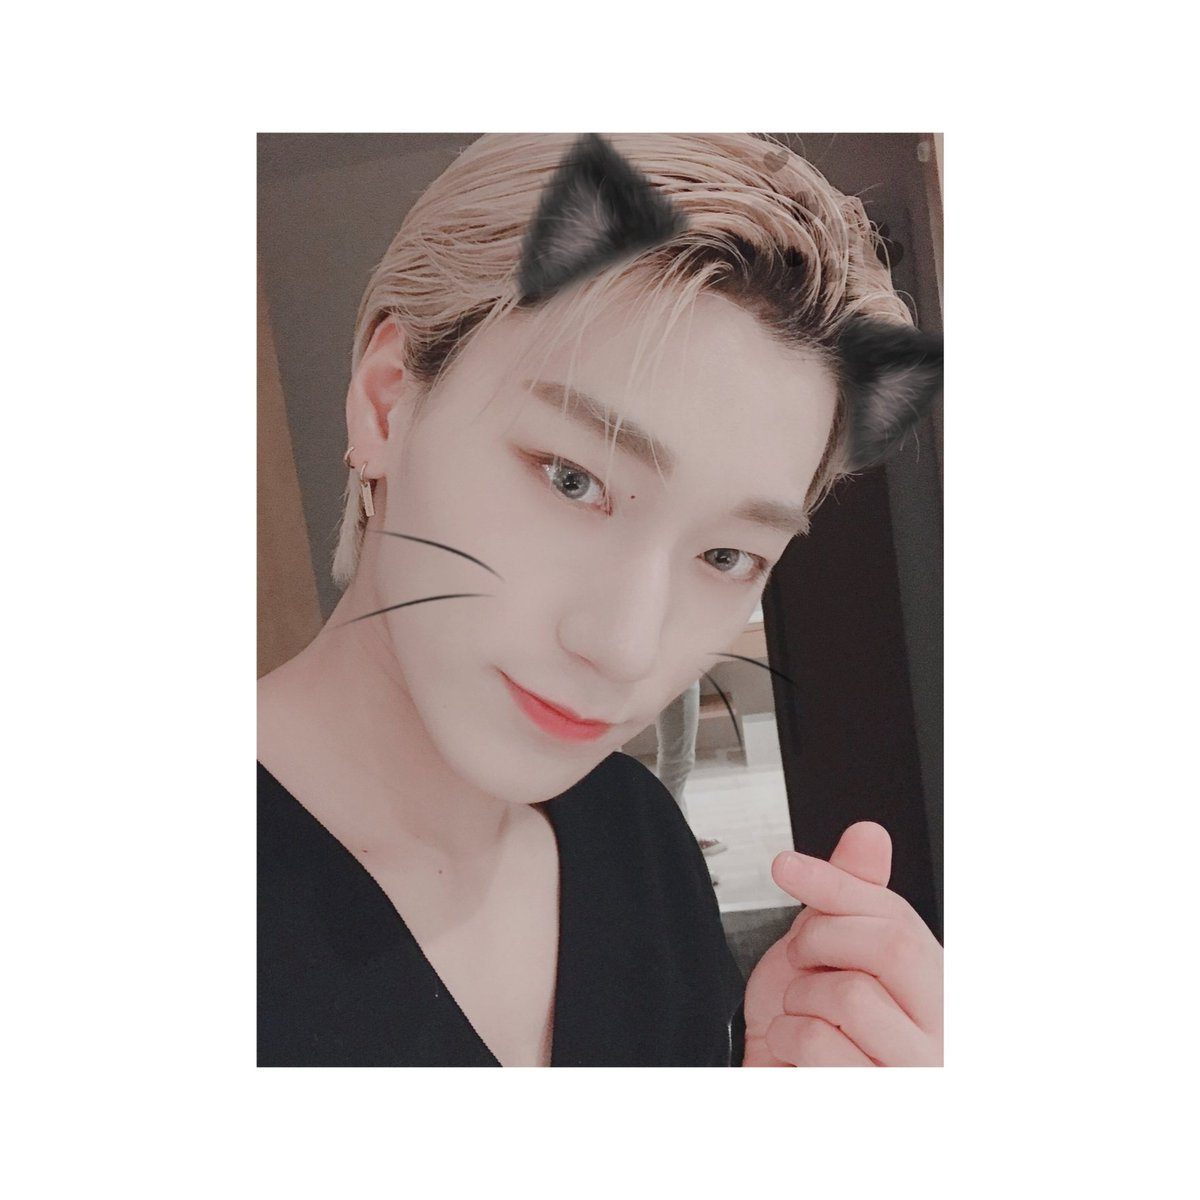 """""""Right now we're in the blue ocean... Somewhere over the waves...""""   Tentei km  #AtinySelcaDay @ATEEZofficial<br>http://pic.twitter.com/RVGd9zpnBW"""